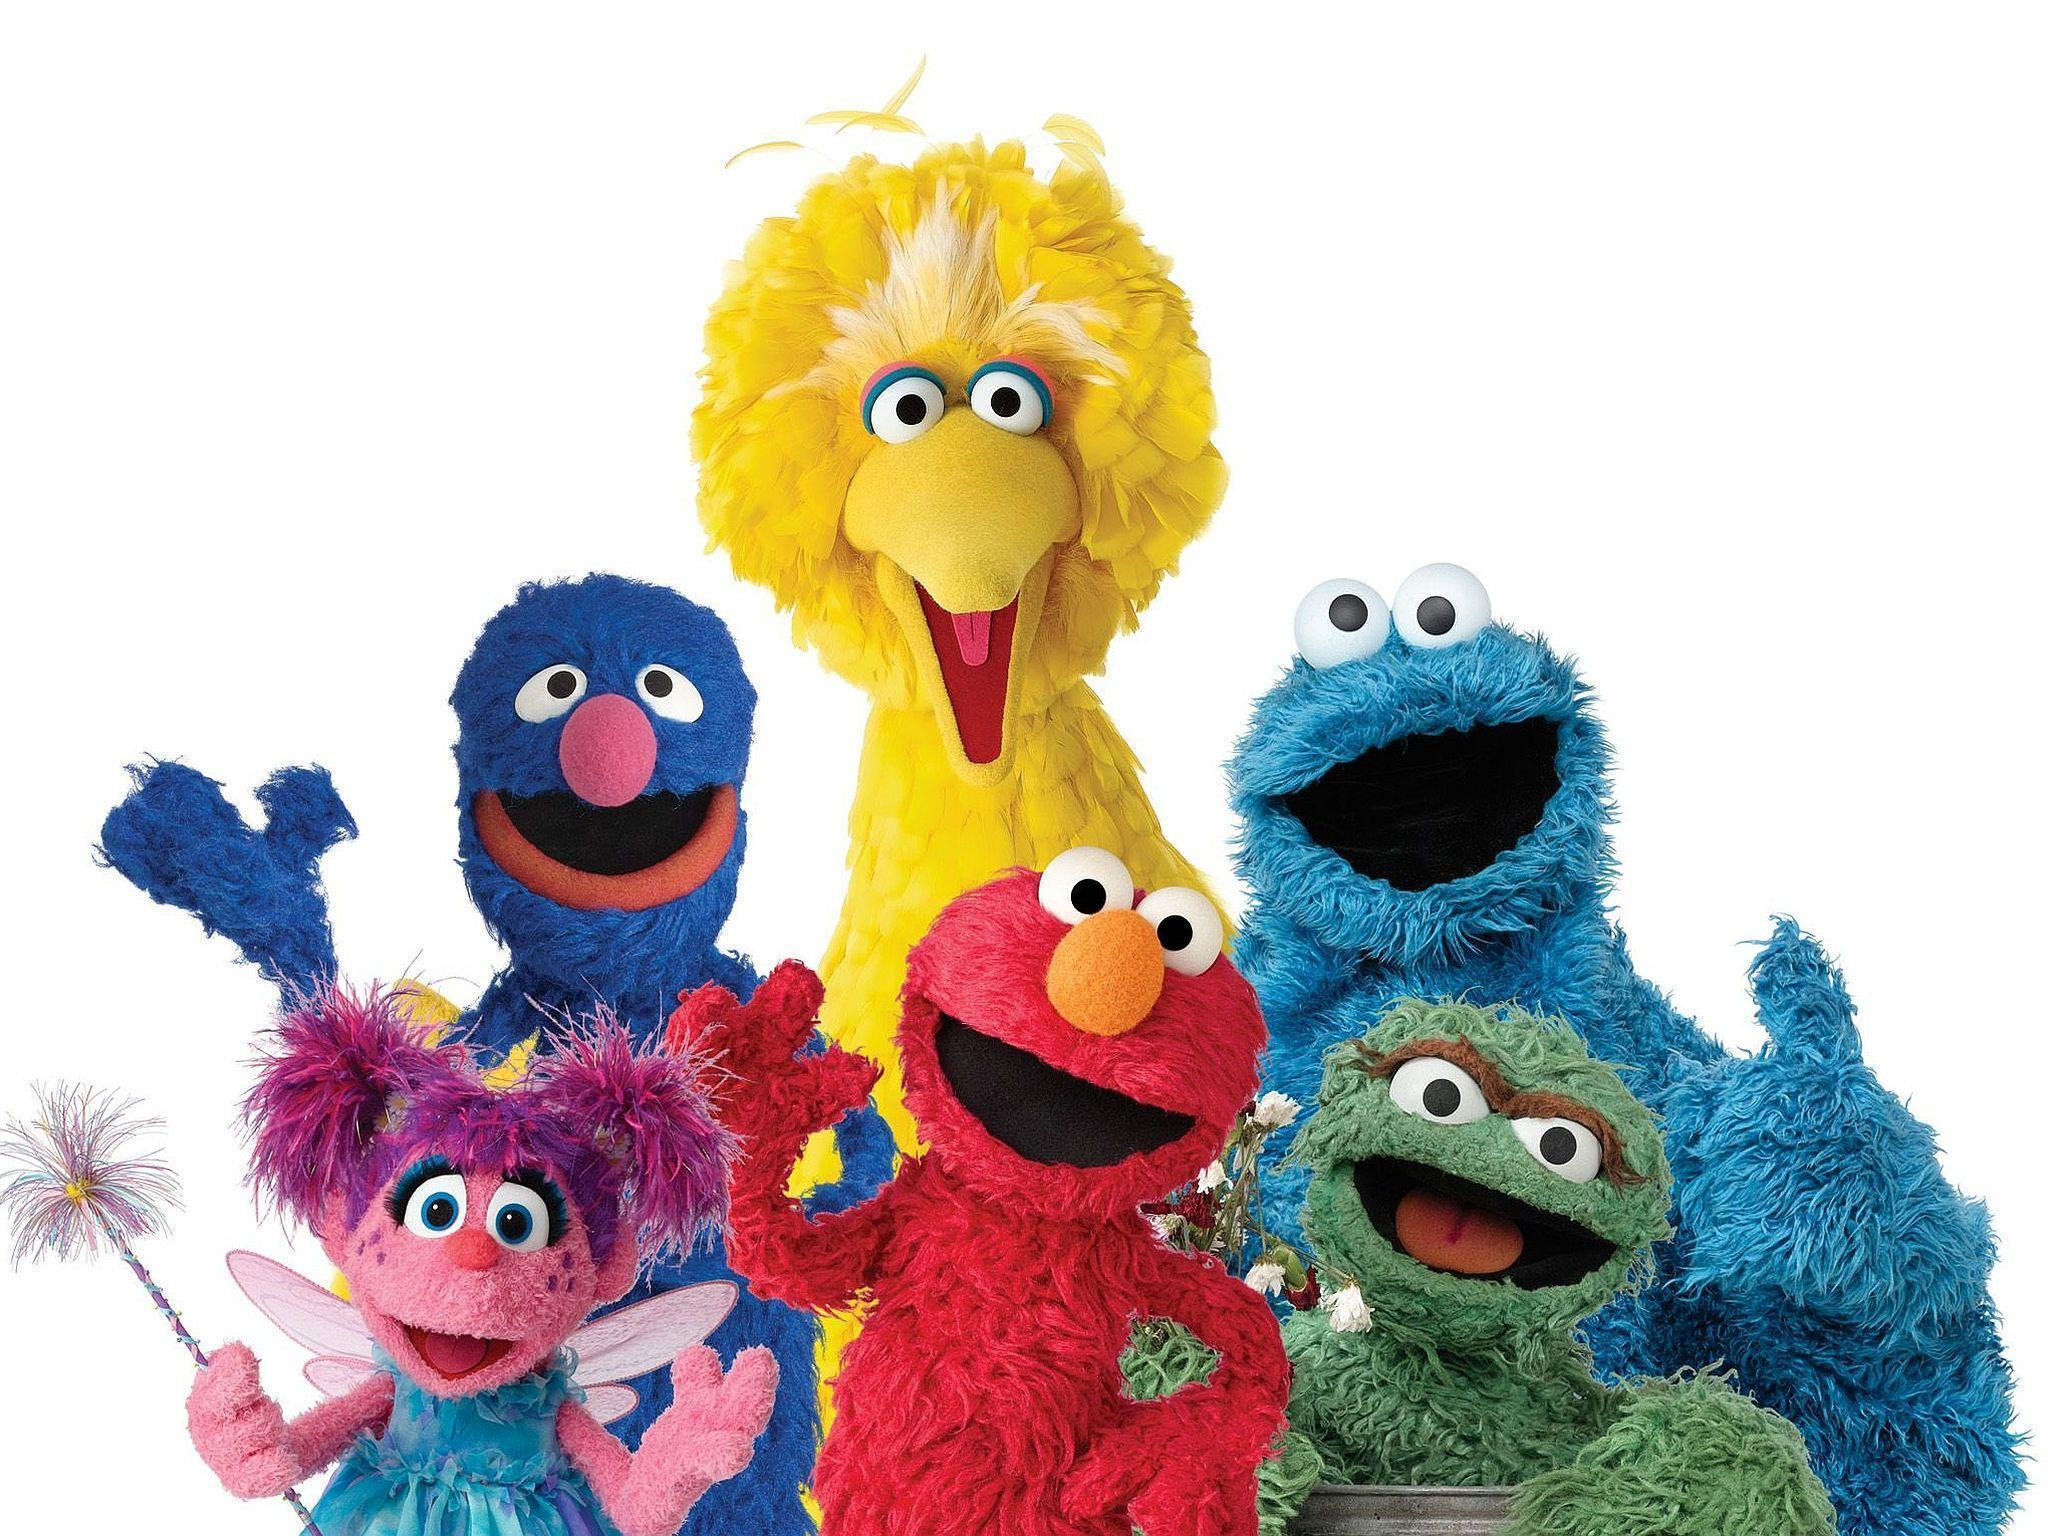 Grover Sesame Street Wallpapers Desktop Background